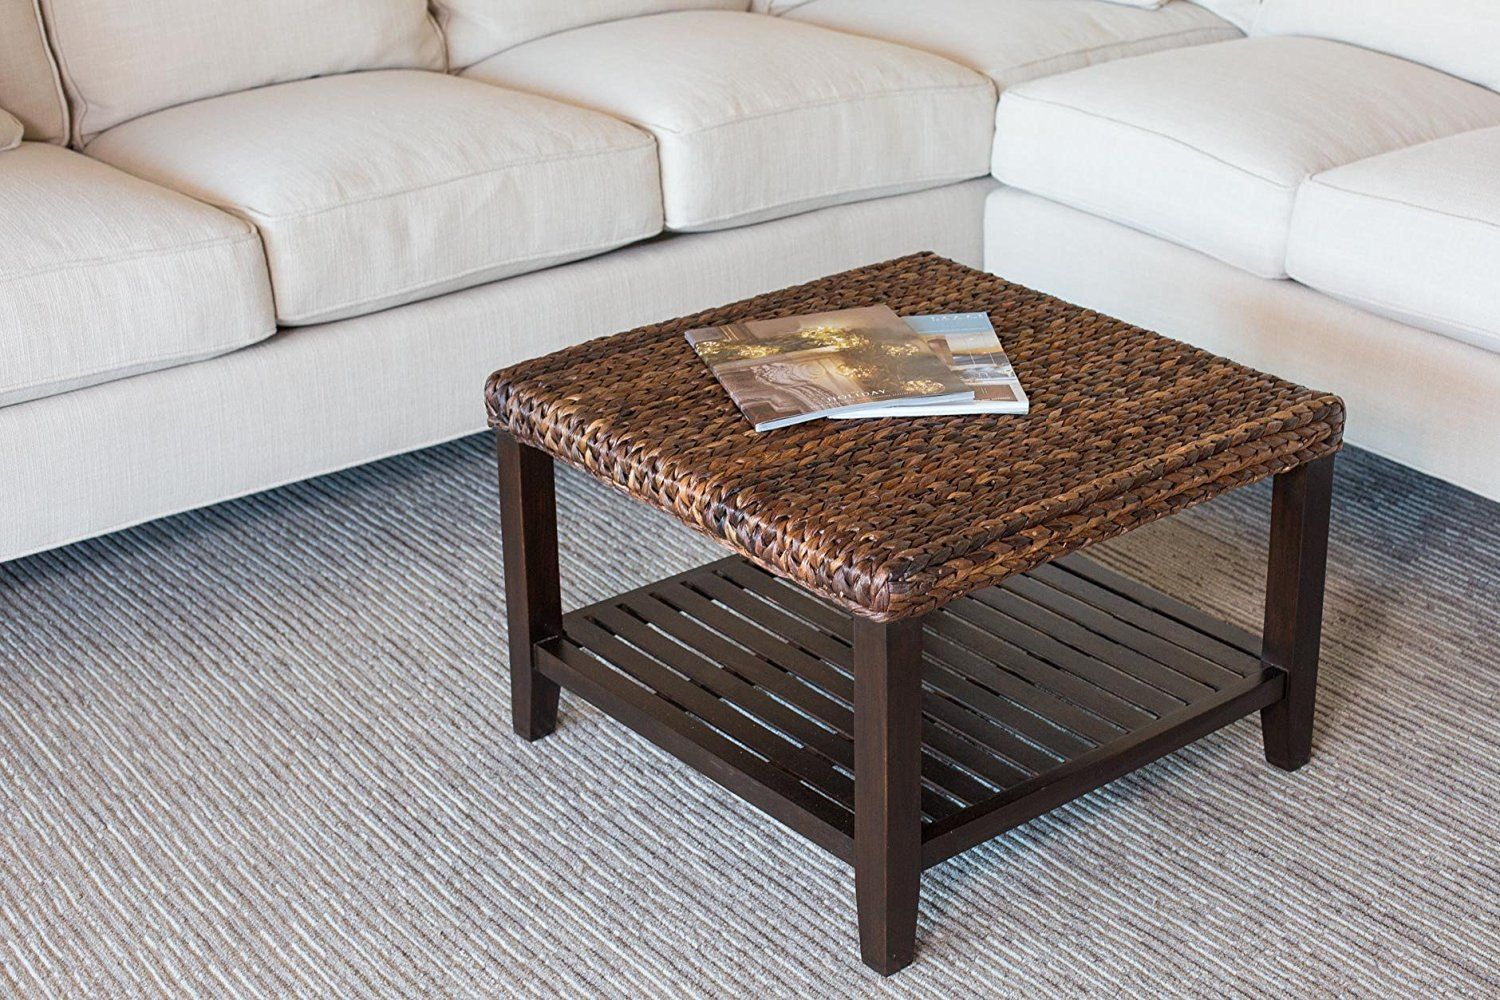 Furniture: Pottery Barn Seagrass Coffee Table You May Choose This Style  Furniture To Put Within Your House Still To Consider Furnitures Mak From  The ...